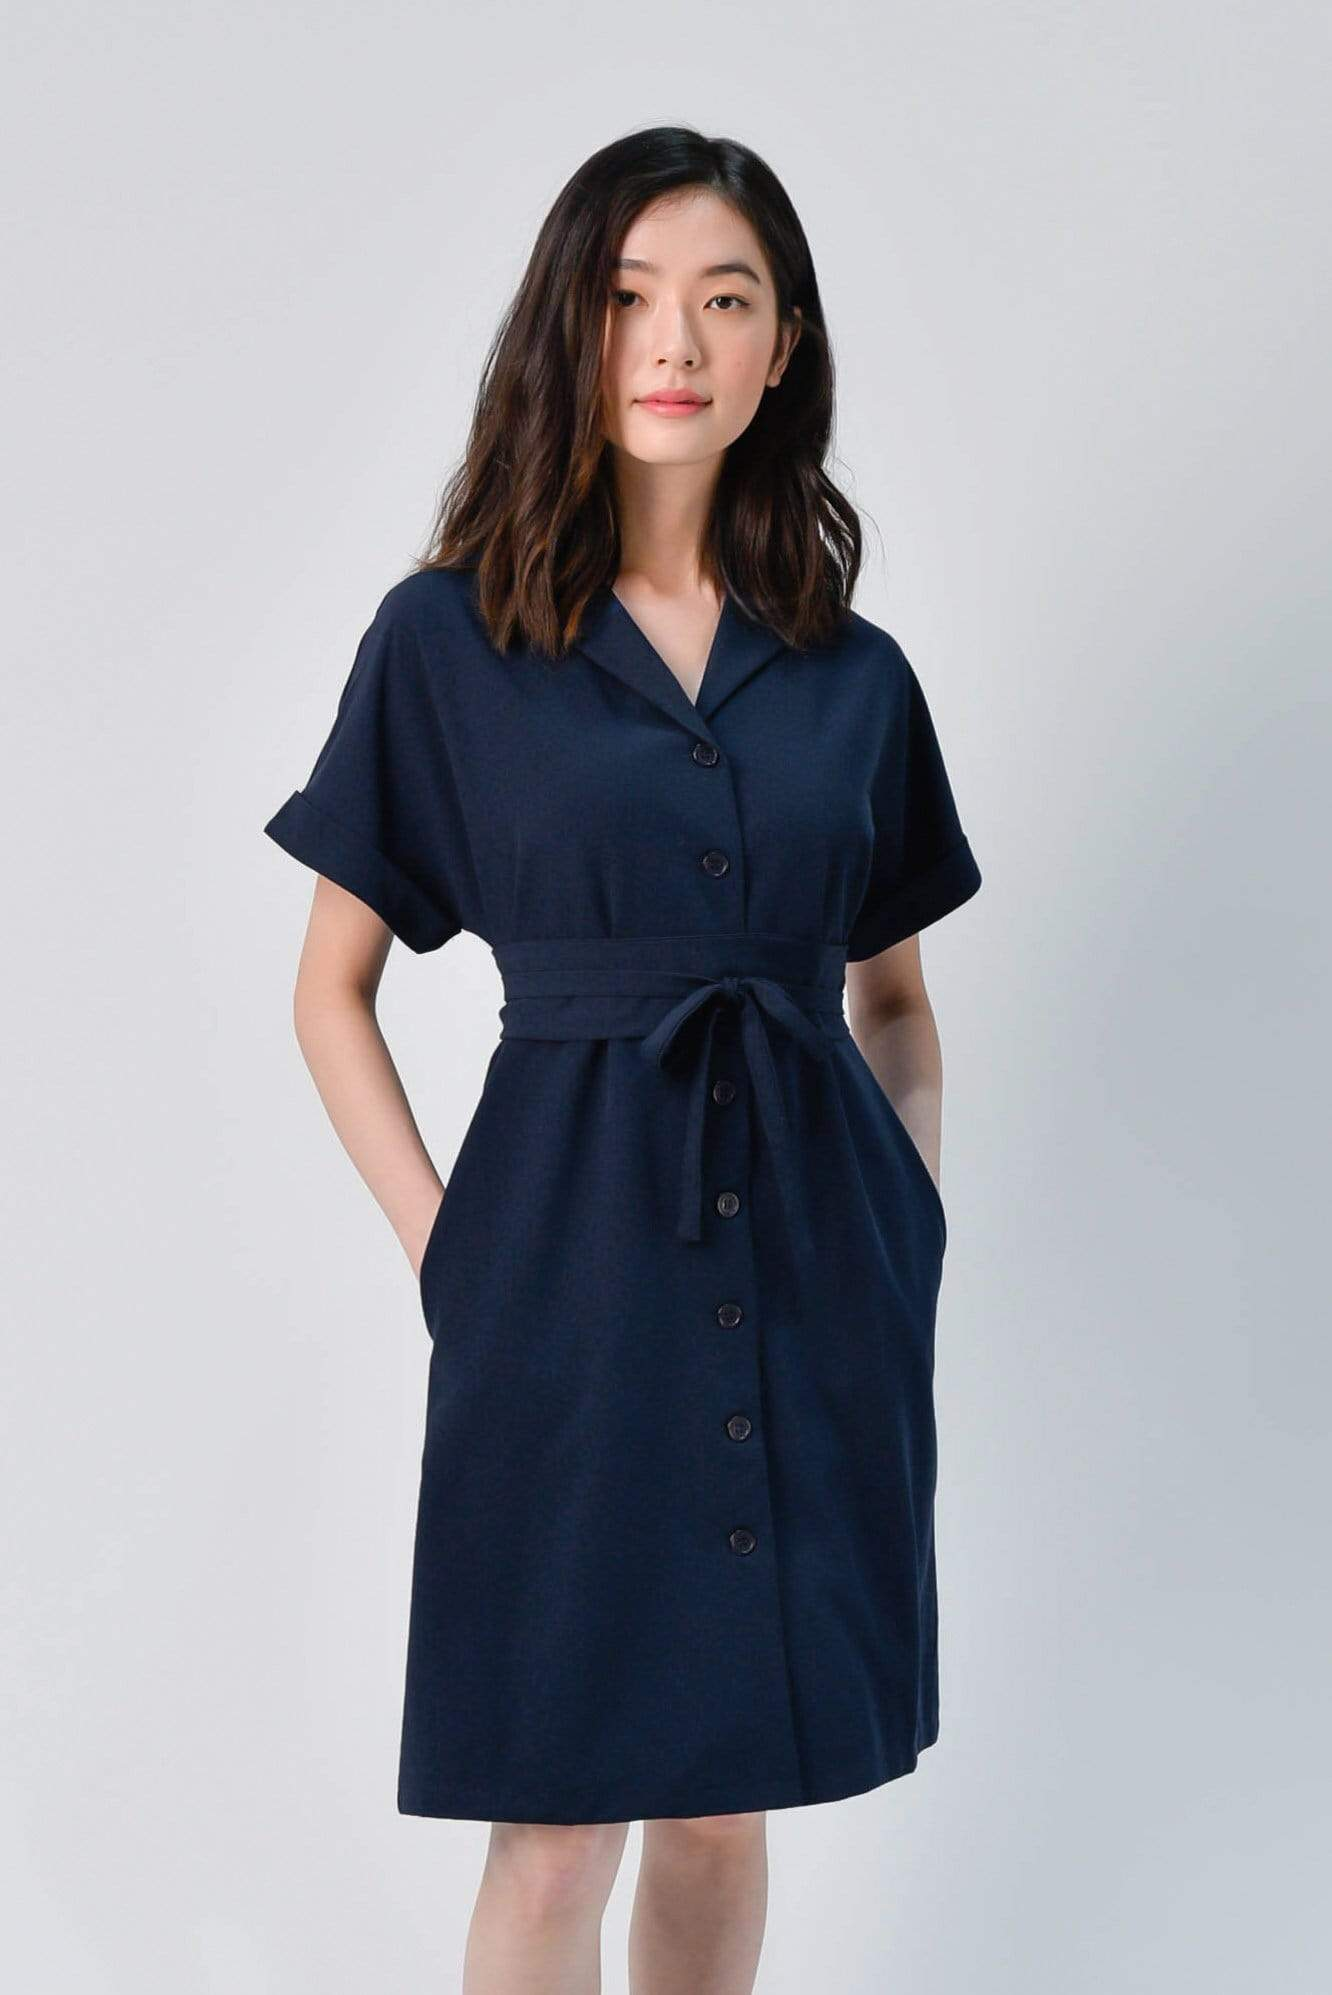 AWE Dresses HAEWON OBI-SASH SHIRTDRESS IN NAVY